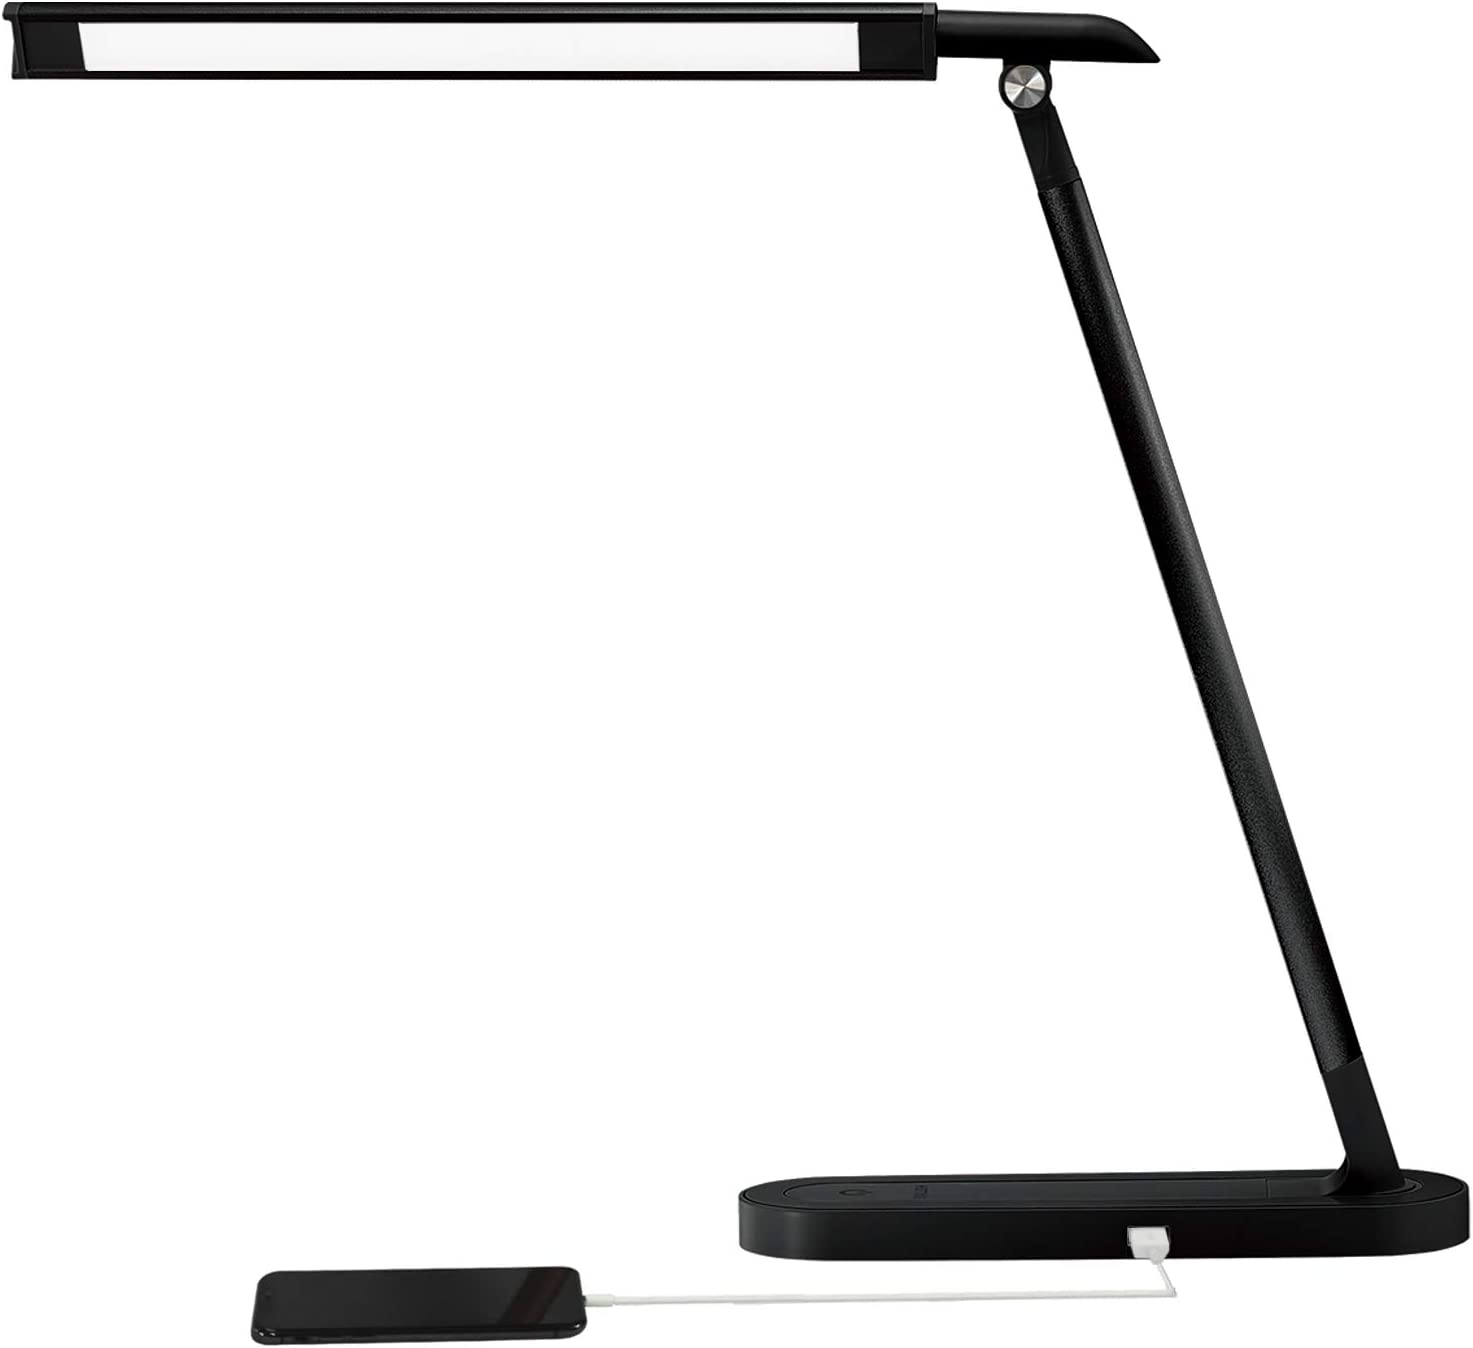 GLFERA LED Desk Lamp with USB Charging Port, Dimmable Eye-Caring Office Lamp with Adapter, 3 Lighting Modes with 3 Brightness Levels, Touch-Sensitive Control(Black, 10W)